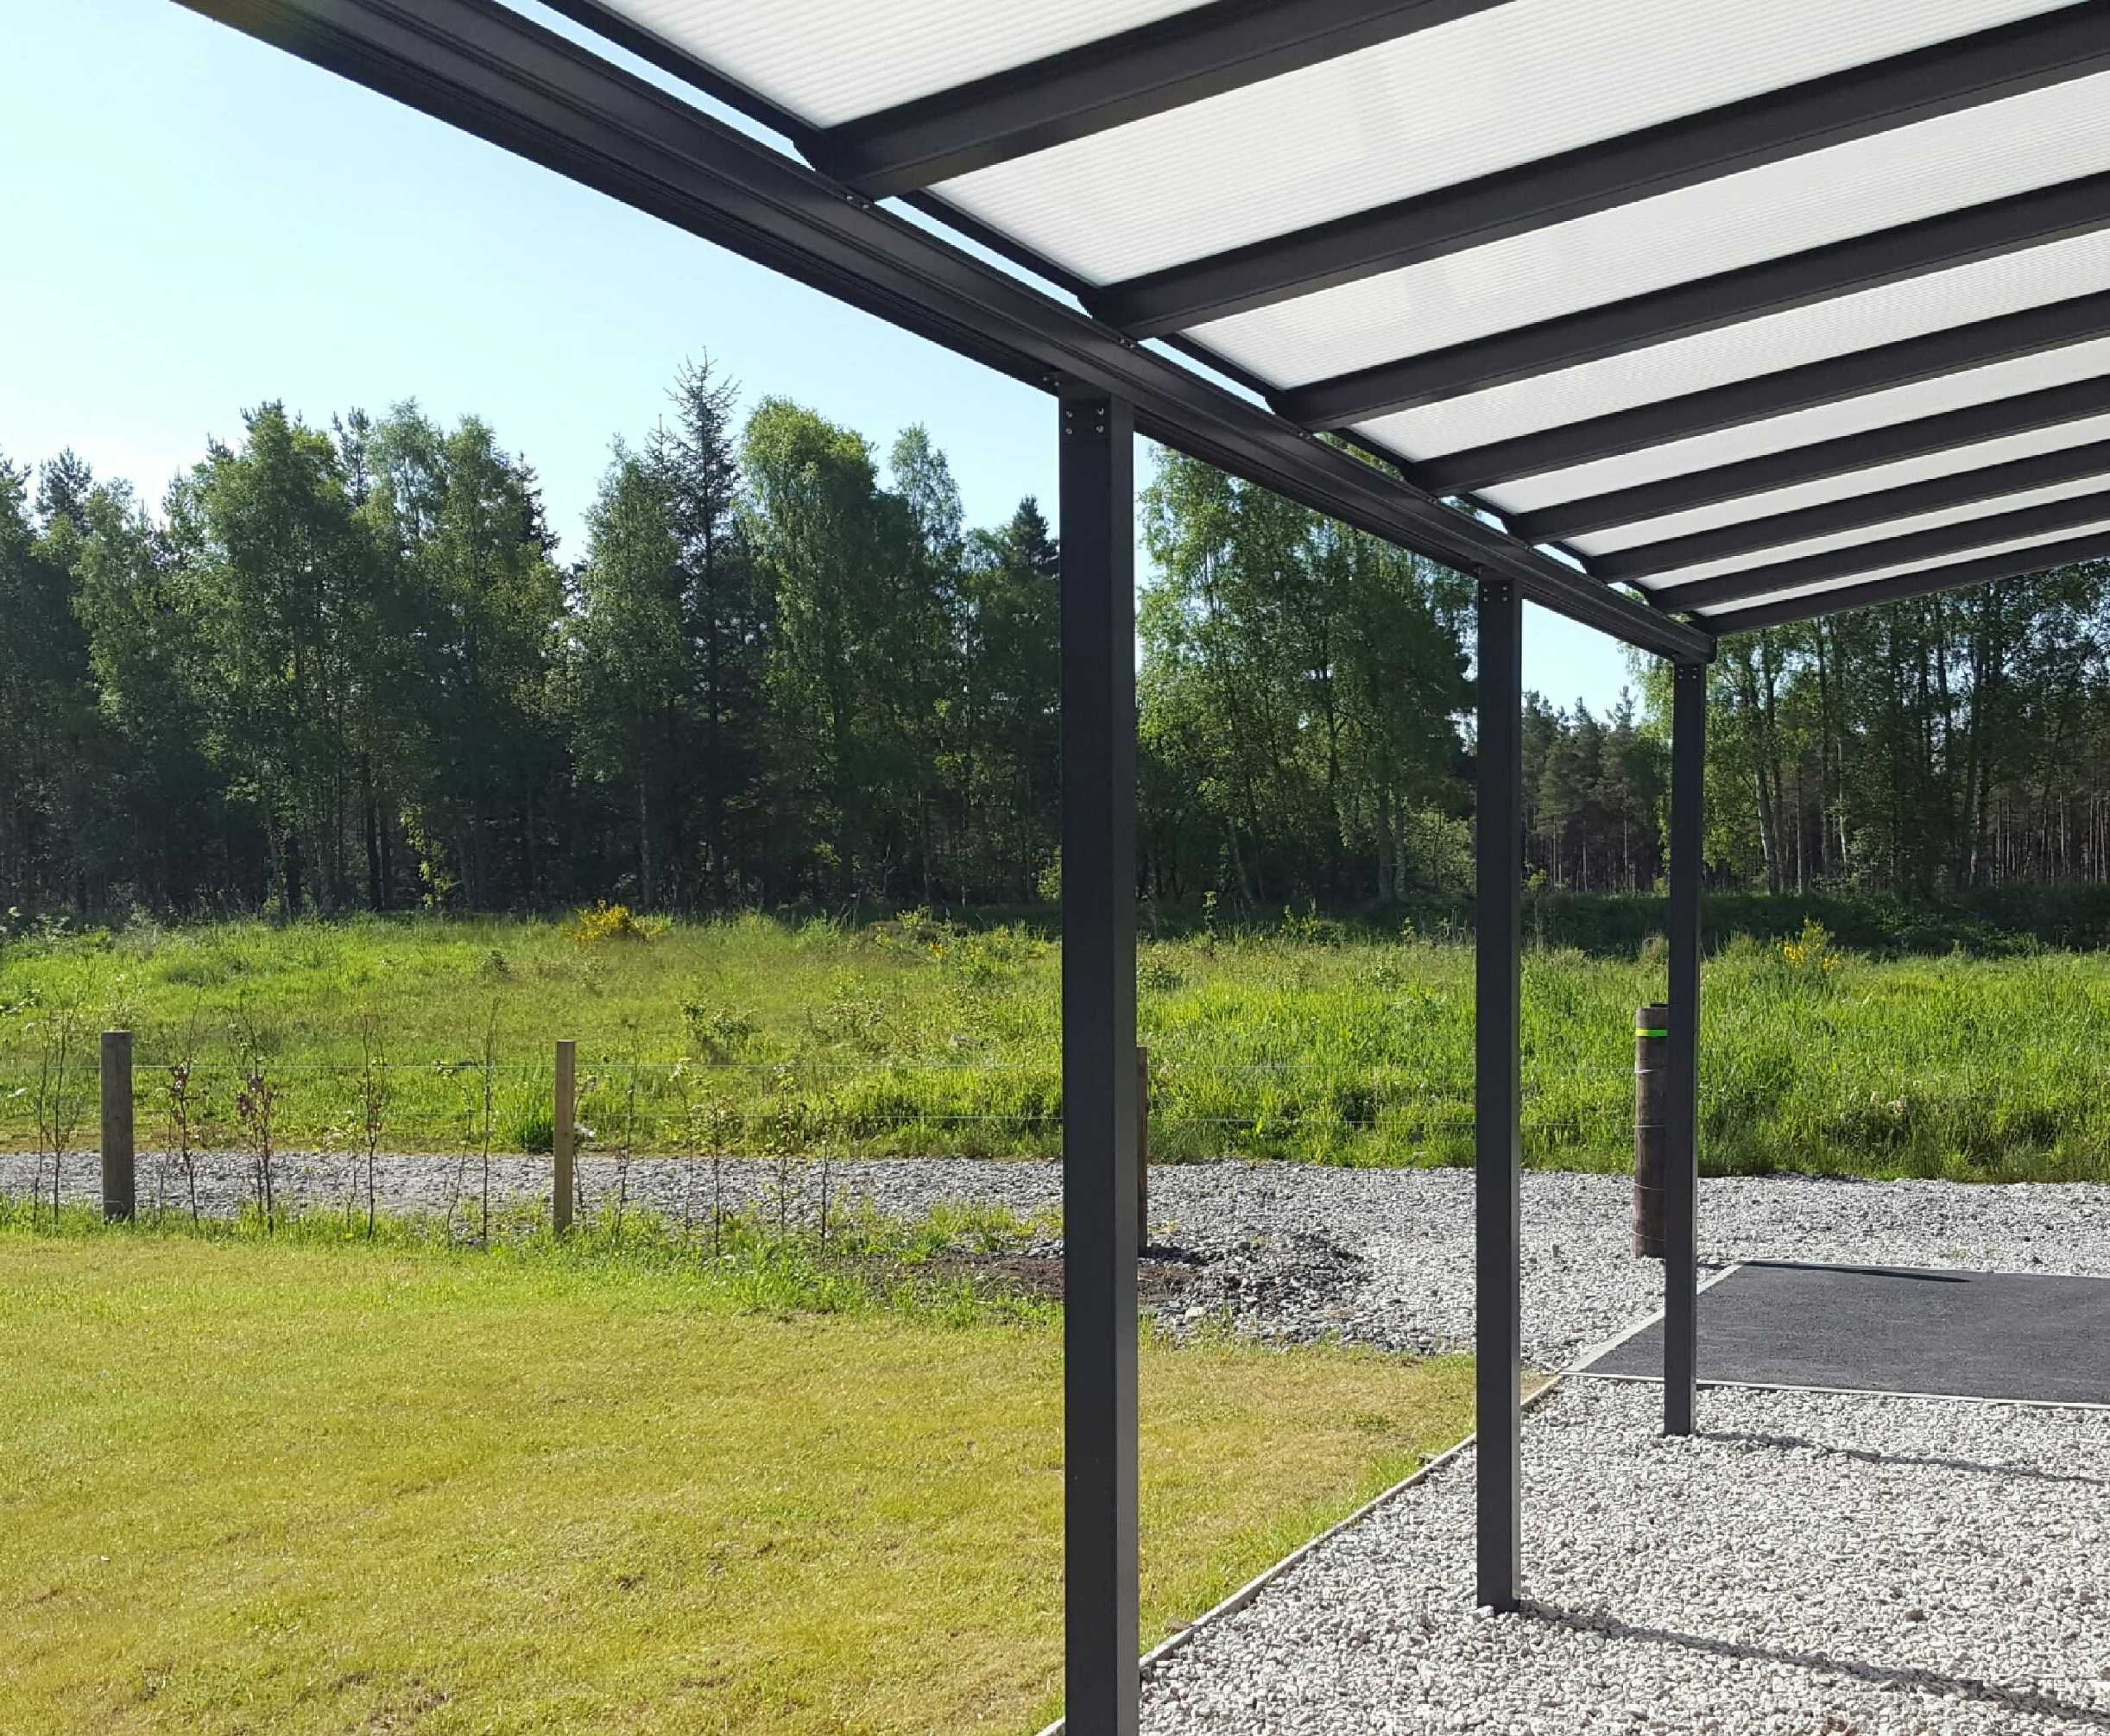 Omega Smart Lean-To Canopy, Anthracite Grey, 16mm Polycarbonate Glazing - 8.4m (W) x 2.0m (P), (4) Supporting Posts